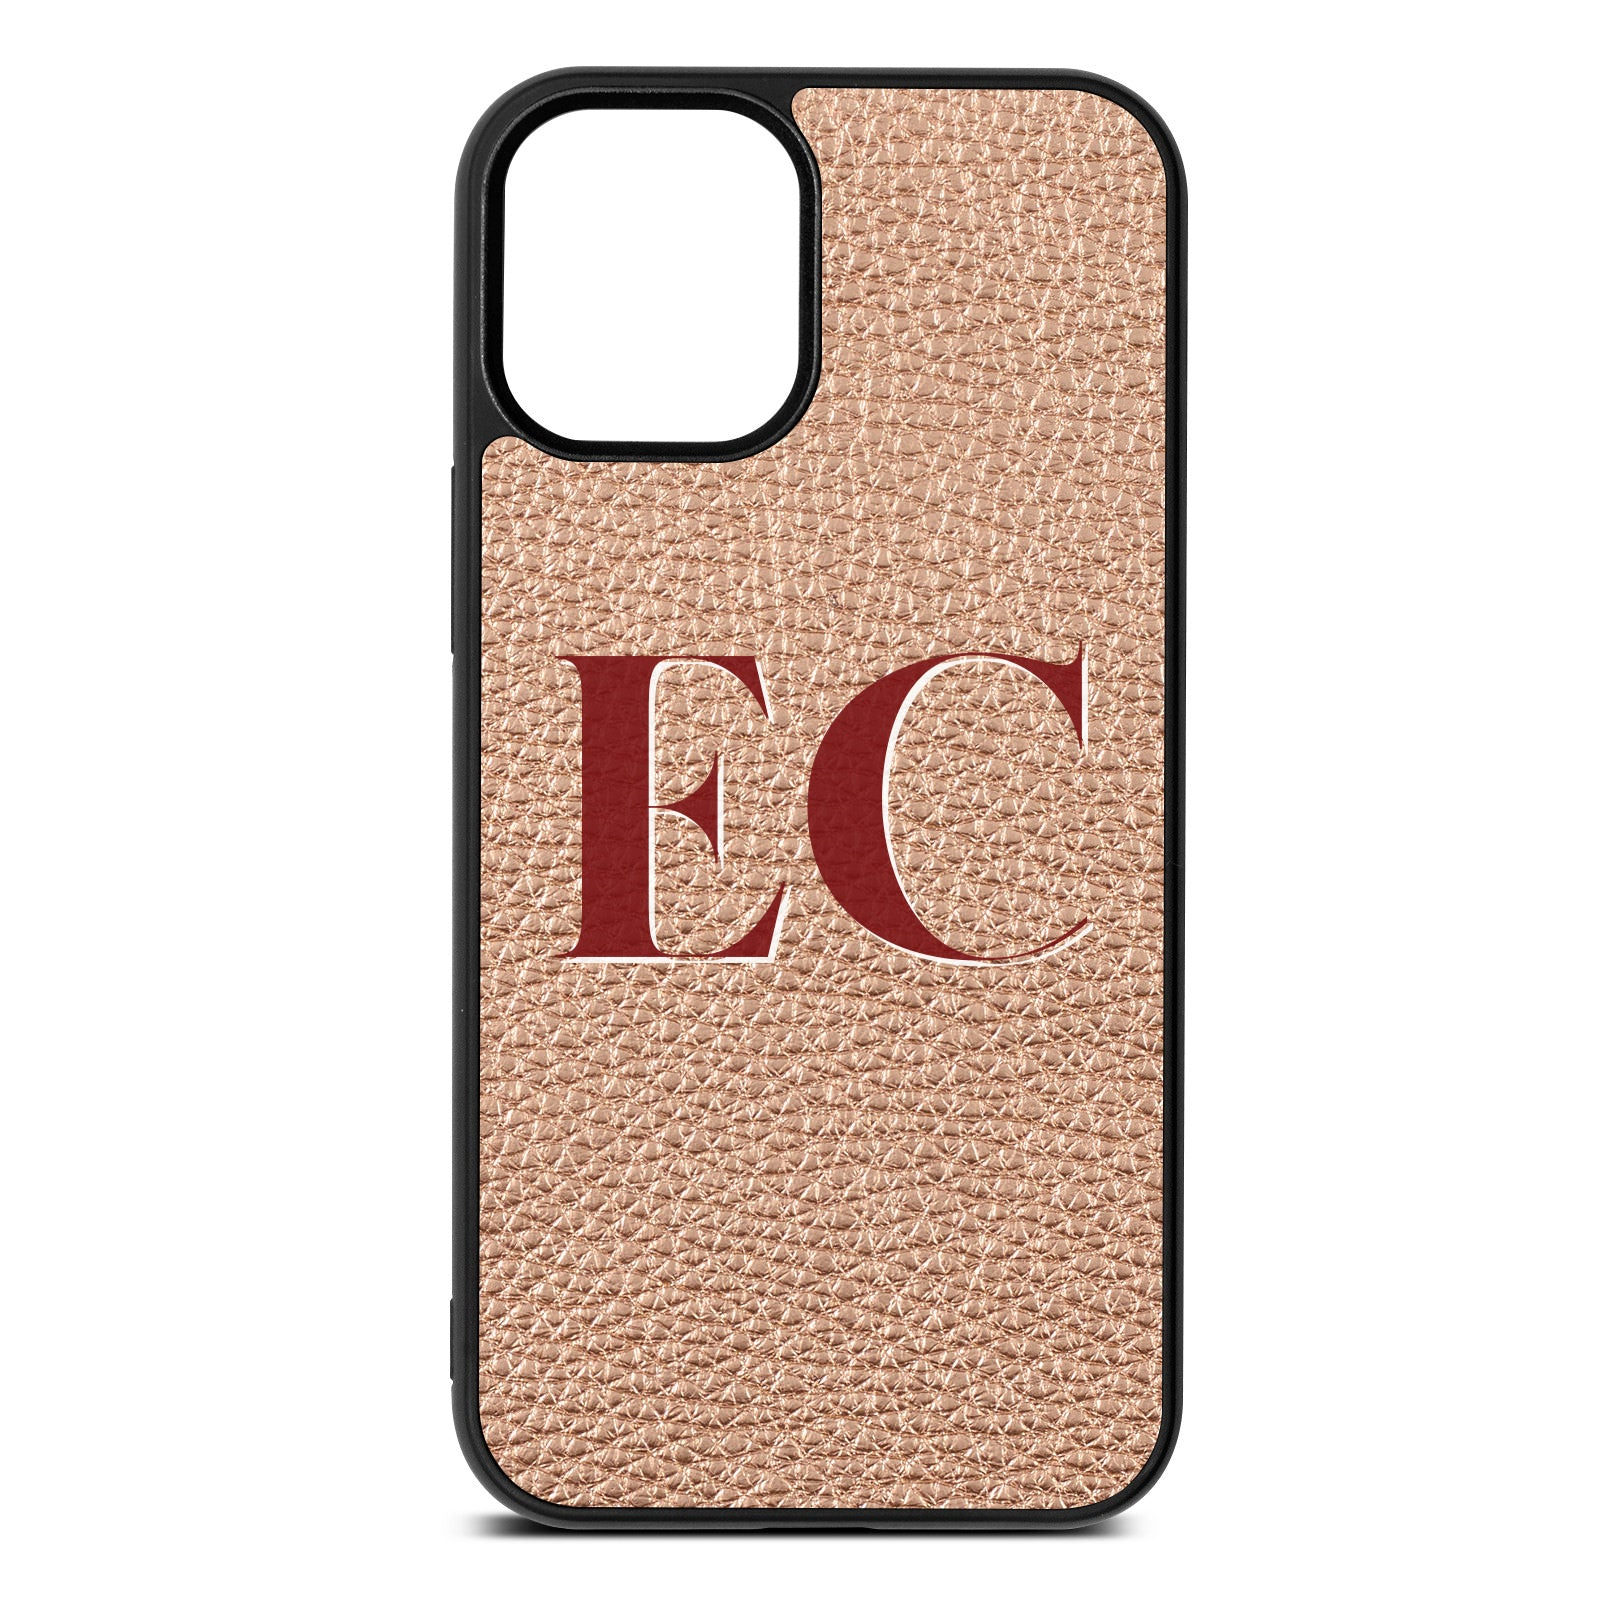 iPhone 12 Mini Rose Gold Pebble Leather Case